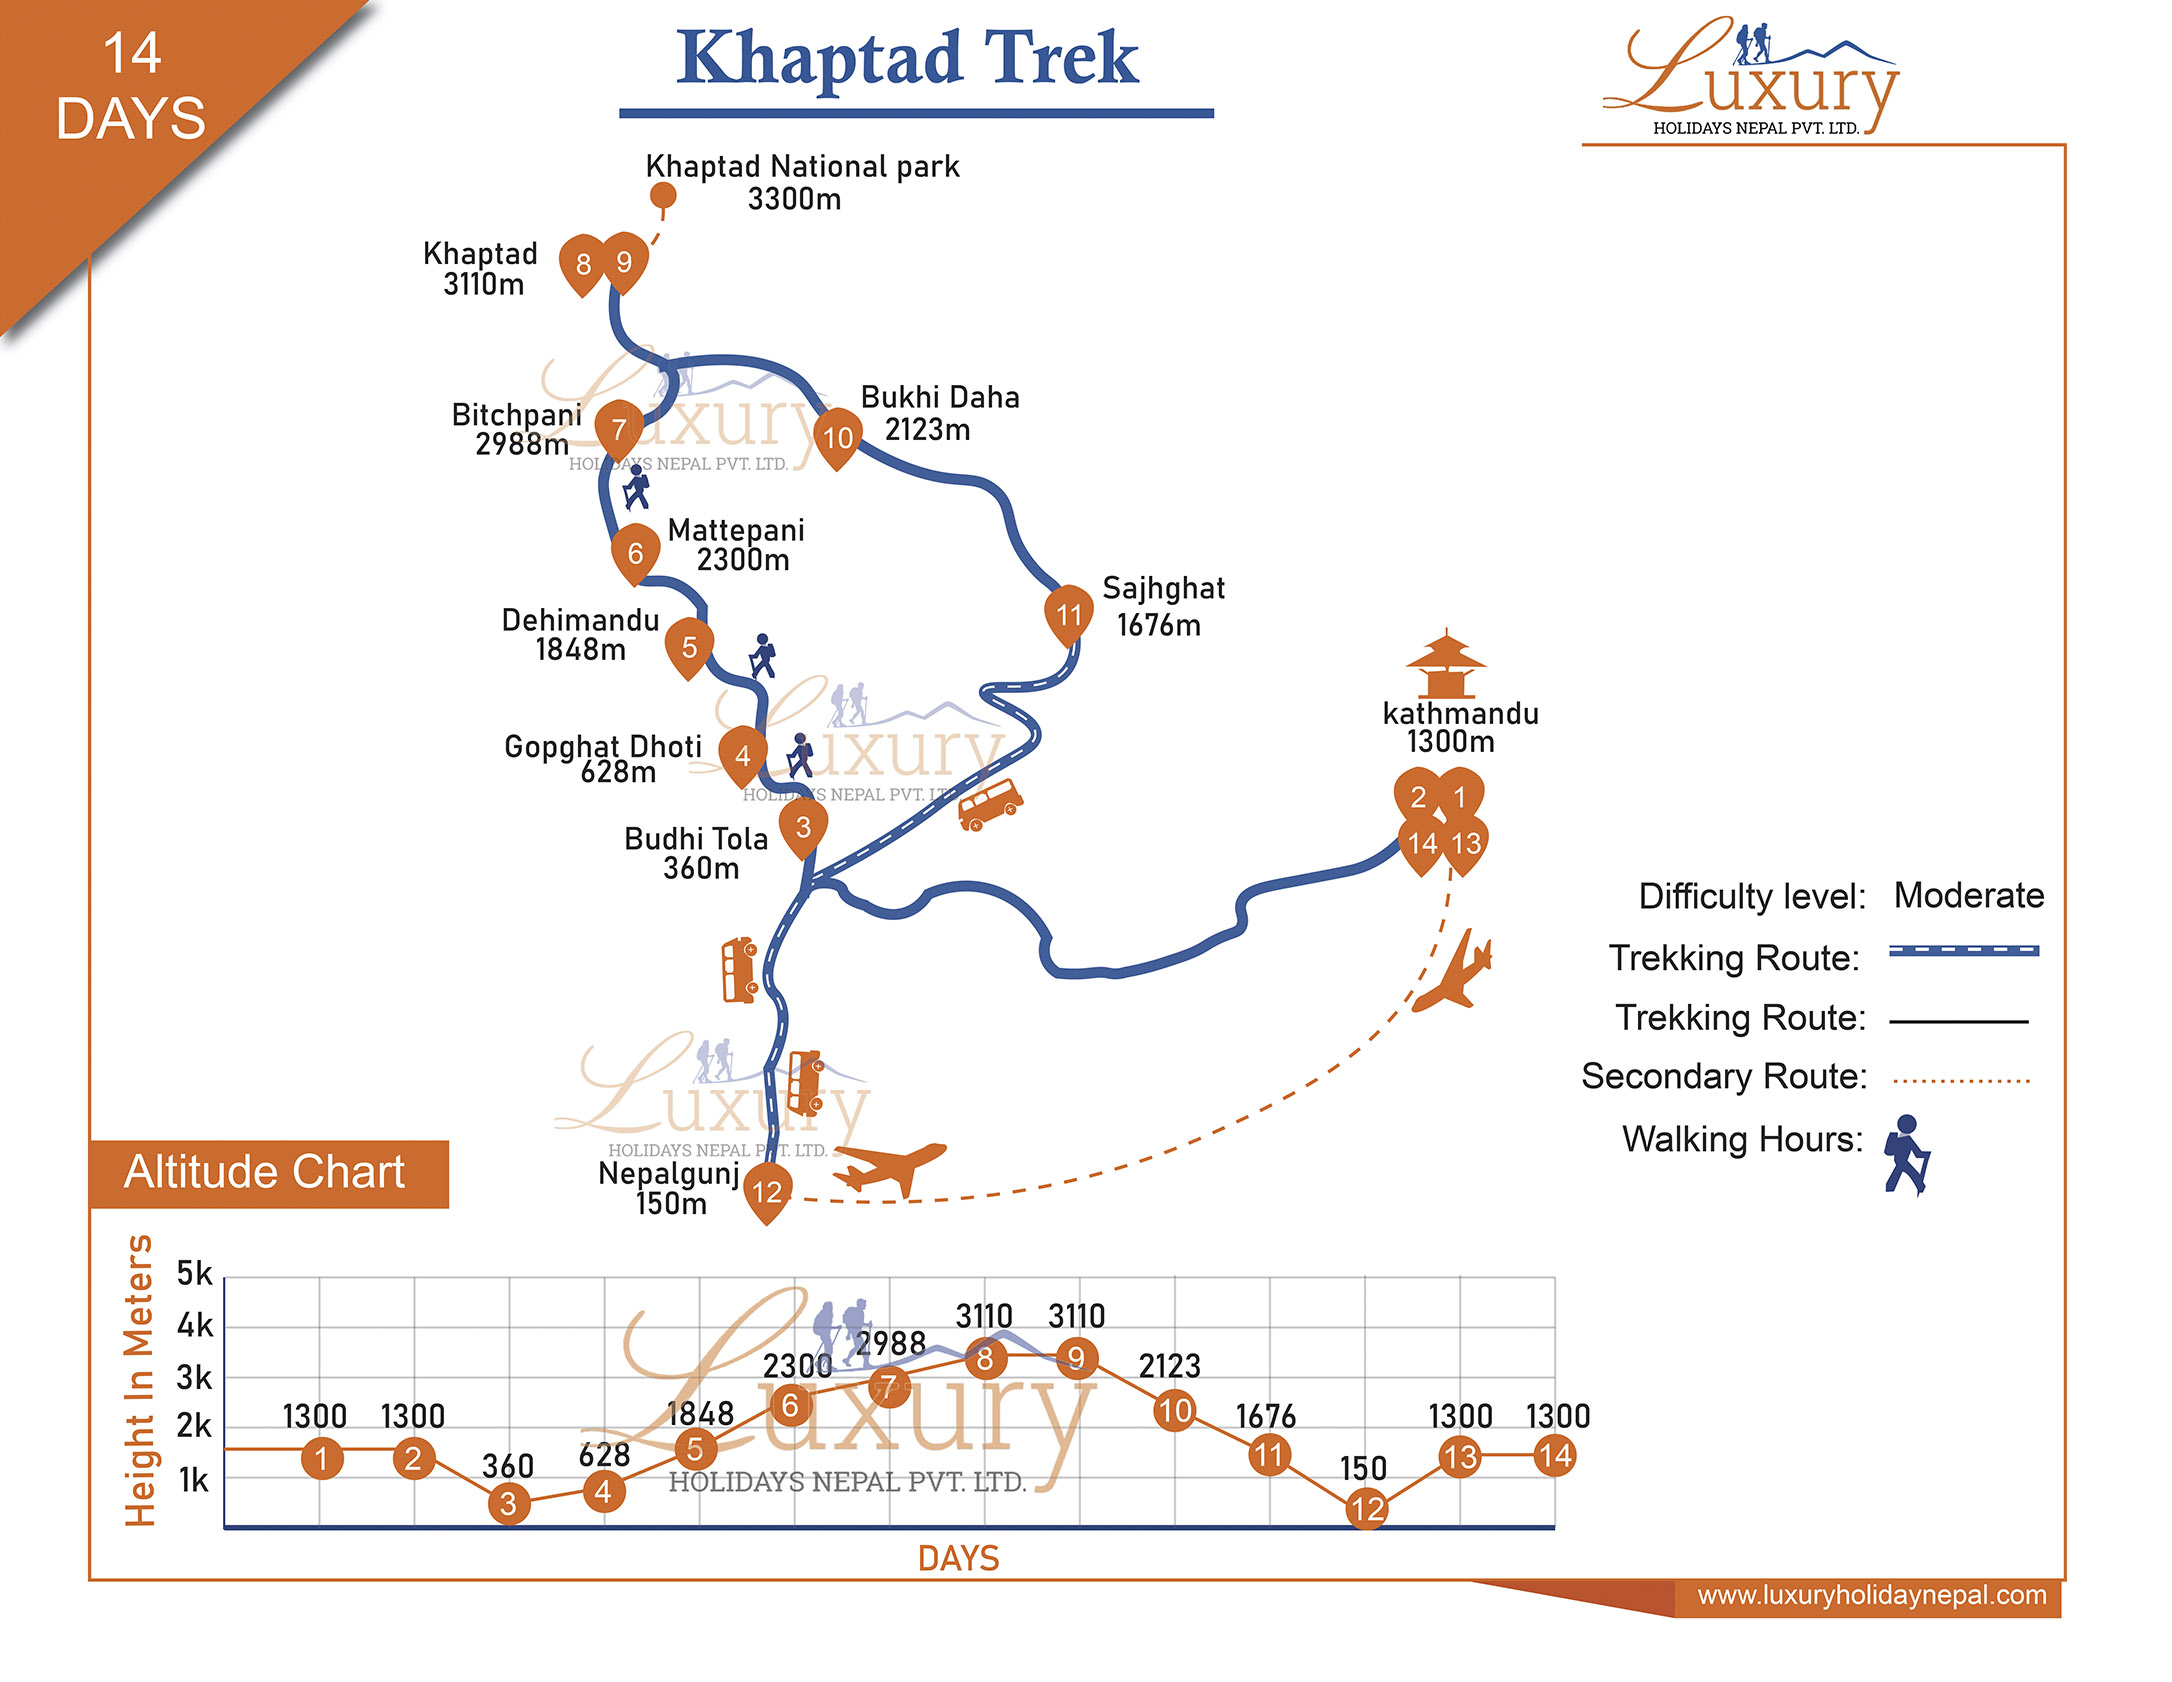 Khaptad Trek Trip Map